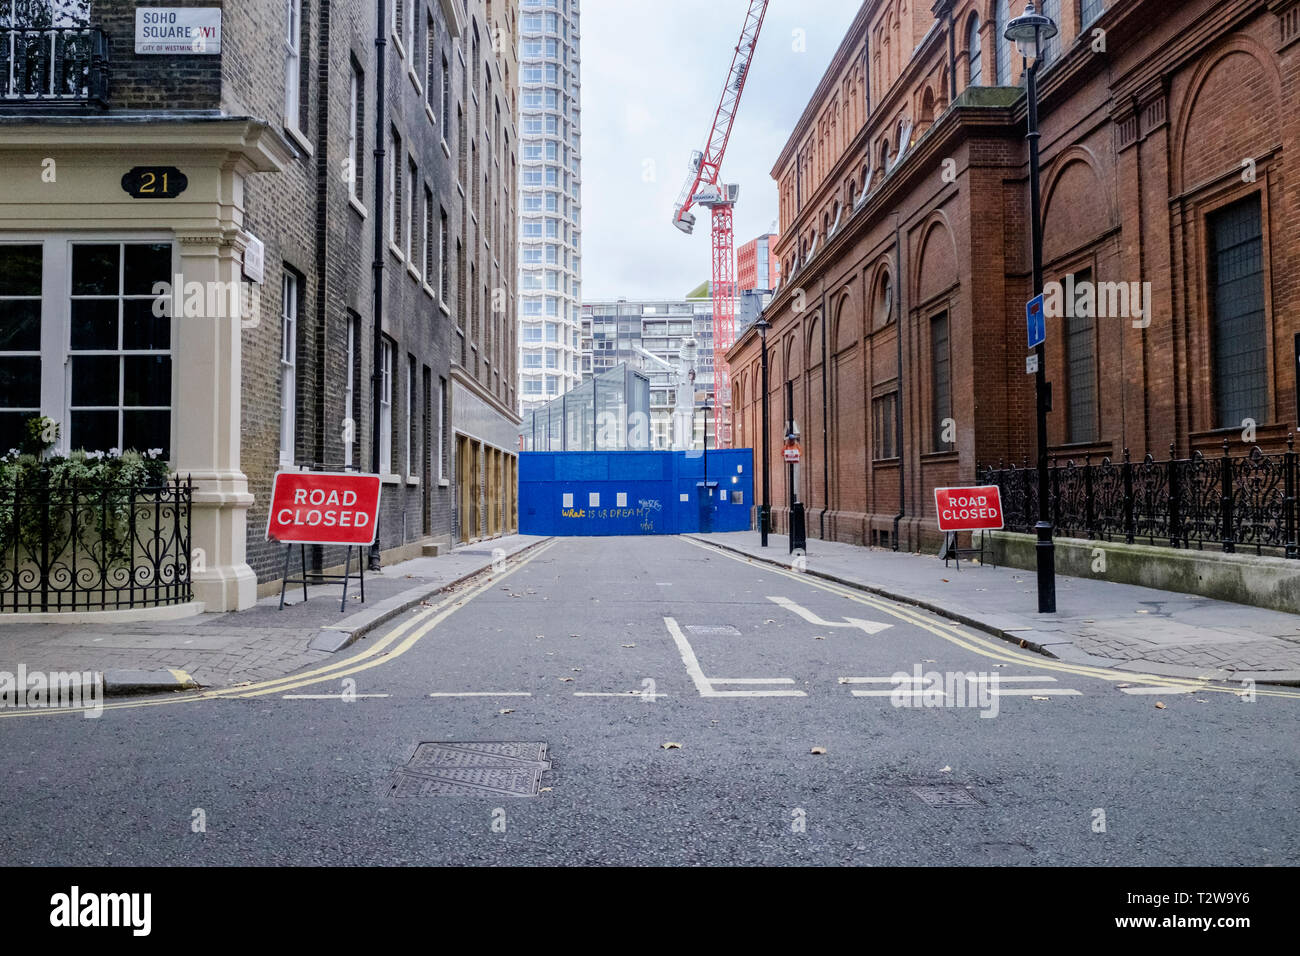 76b107abec8 Road closed due to construction works in Soho London - Stock Image